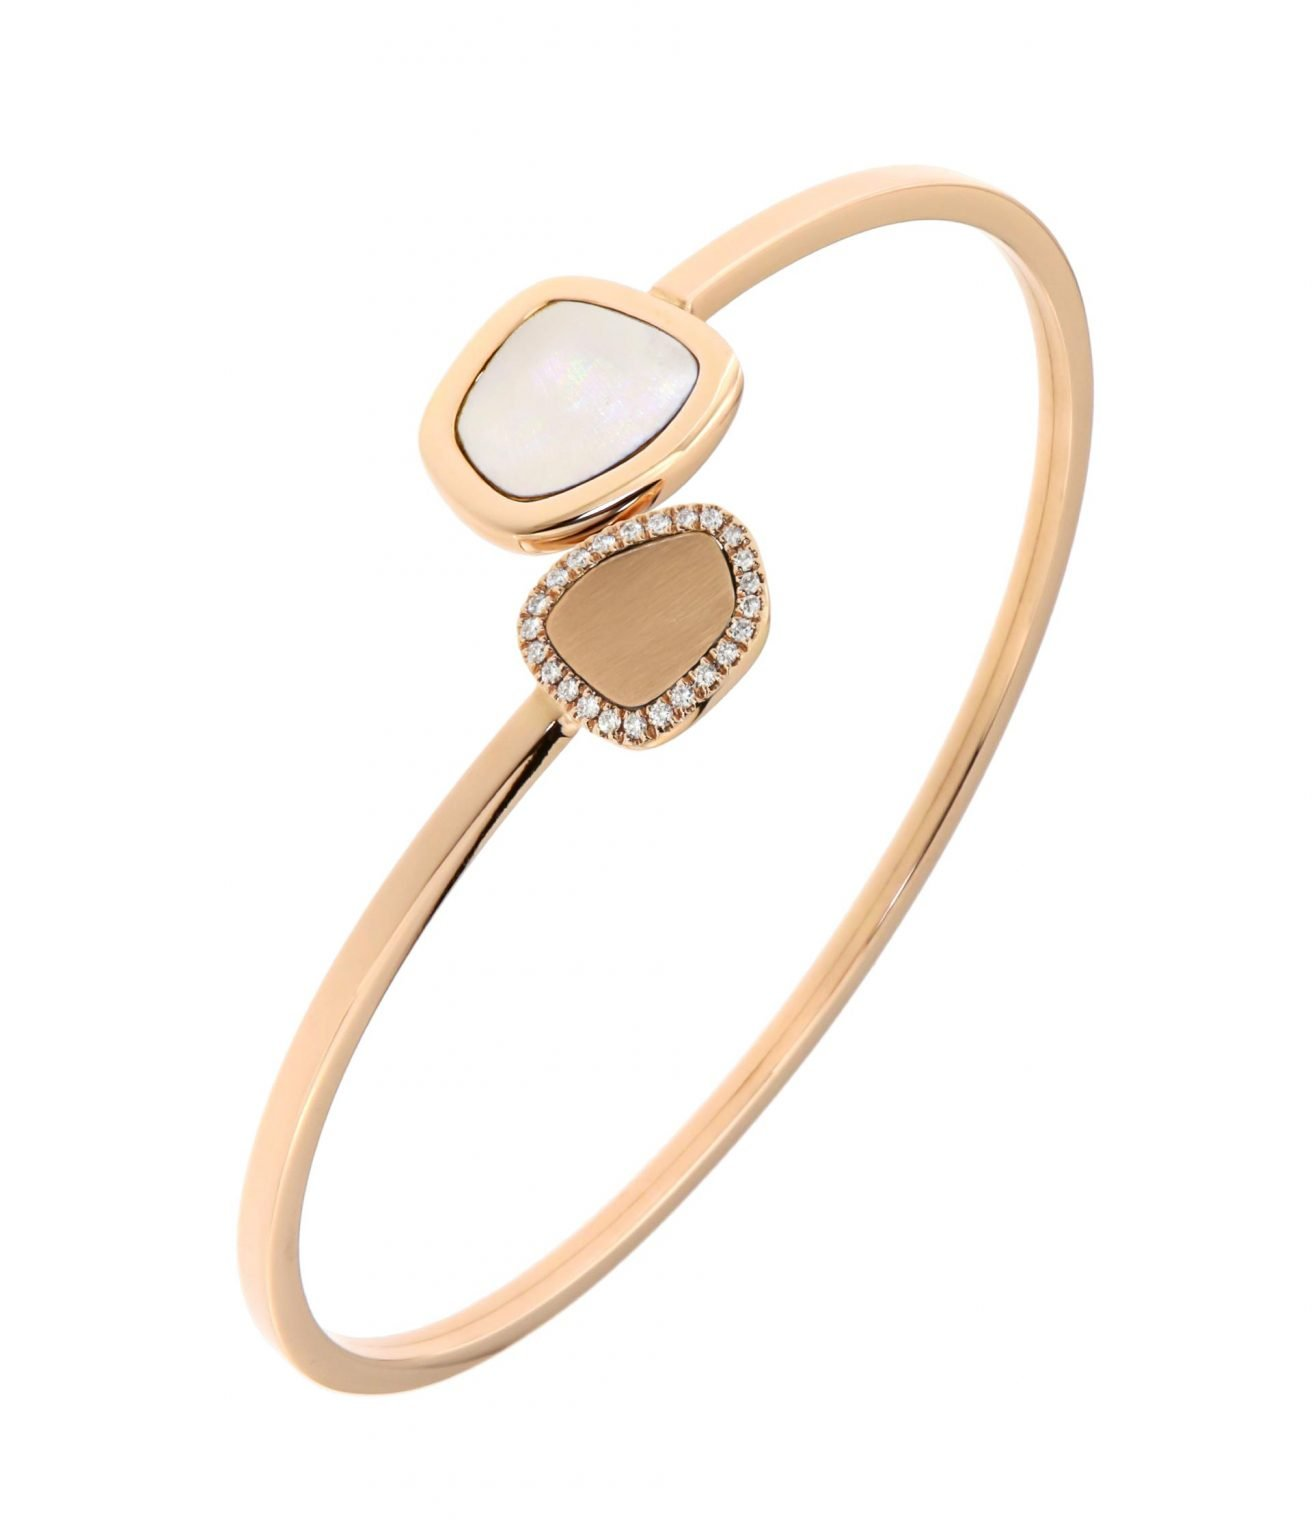 pink gold bracelet with white mother of pearl